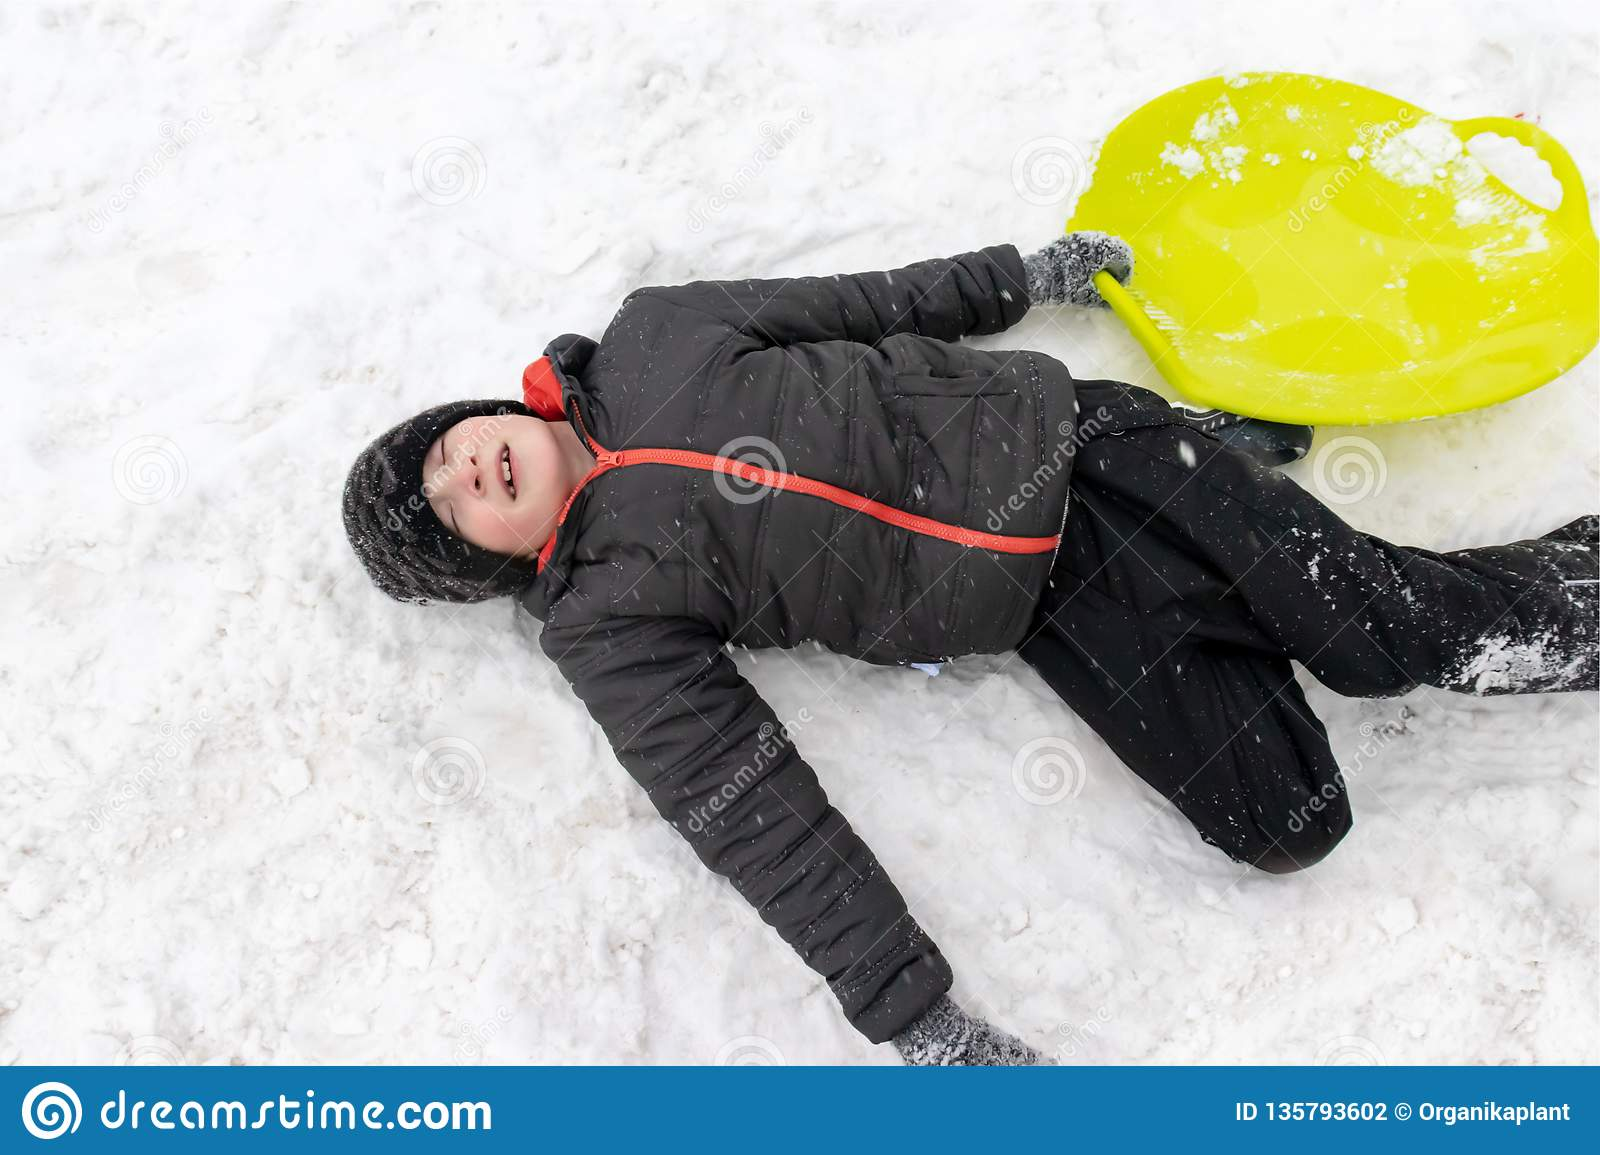 A boy of seven years old lying on the snow and holding a green plastic sled in his hand. Concept of winter activities, recreation